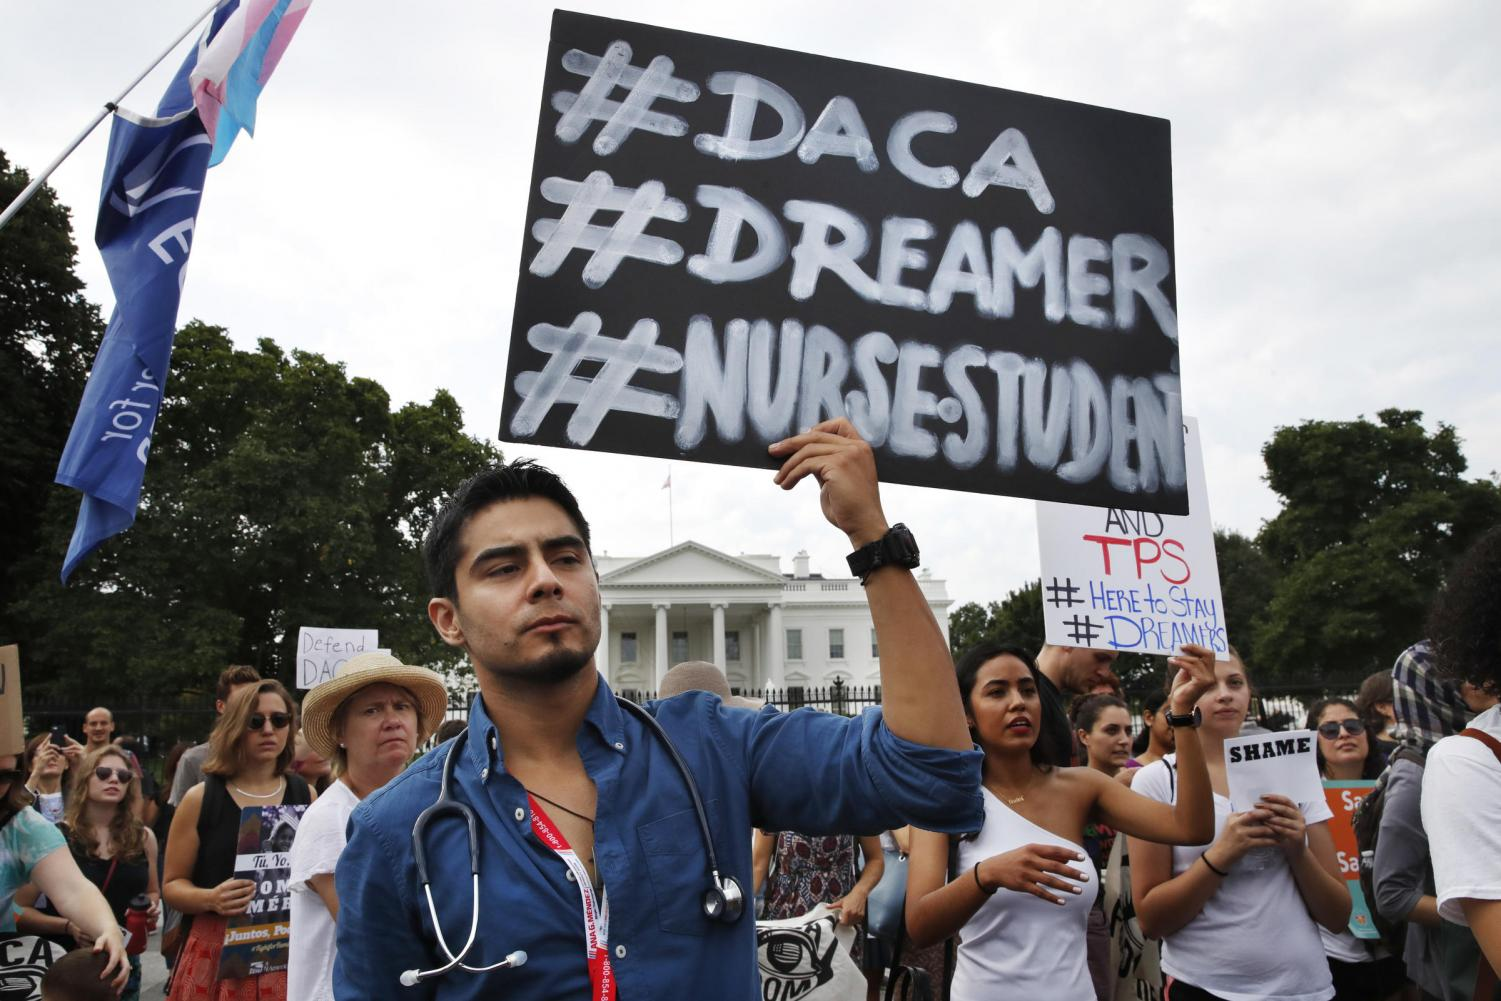 Carlos Esteban, 31, of Woodbridge, Virginia, a nursing student and recipient of Deferred Action for Childhood Arrivals, known as DACA, rallies with others in support of DACA outside of the White House Tuesday. Photo by Jacquelyn Martin/Associated Press.